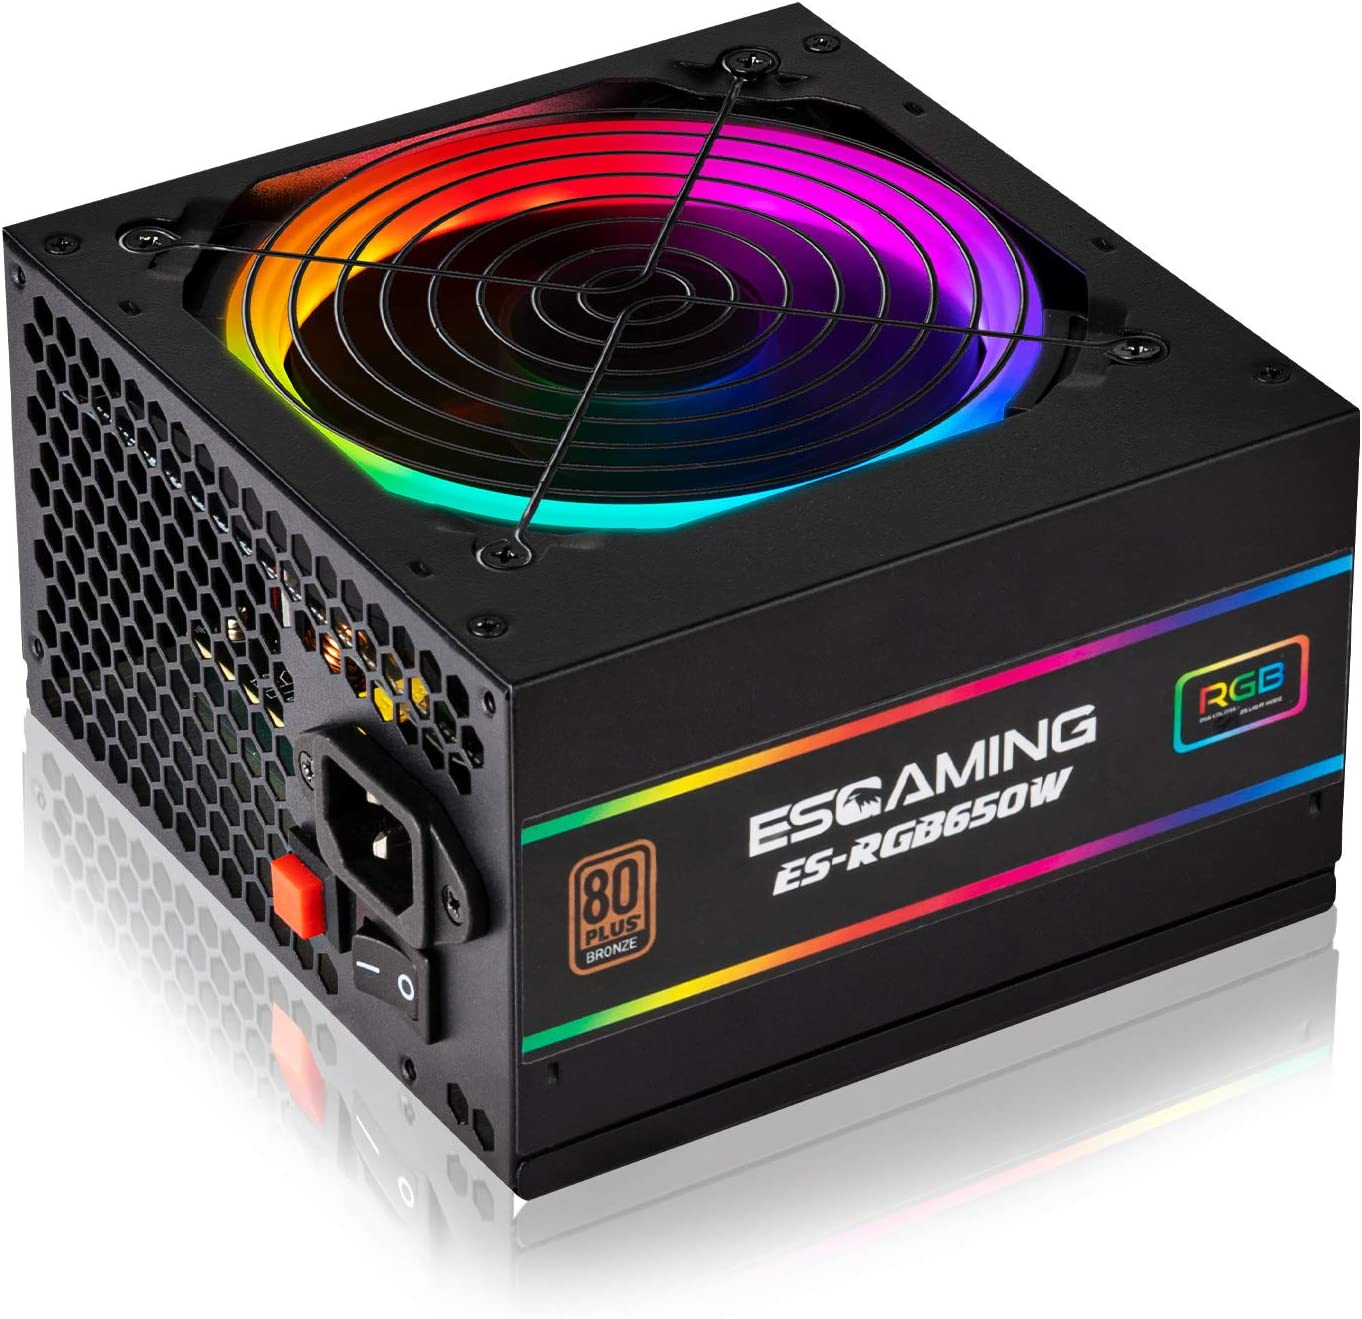 Amazon Com Esgaming 650w Power Supply 80 Plus Bronze Certified Psu Gaming Pc Power Supply With Addressable Rgb Light And 120mm Rgb Cooling Fan Computers Accessories